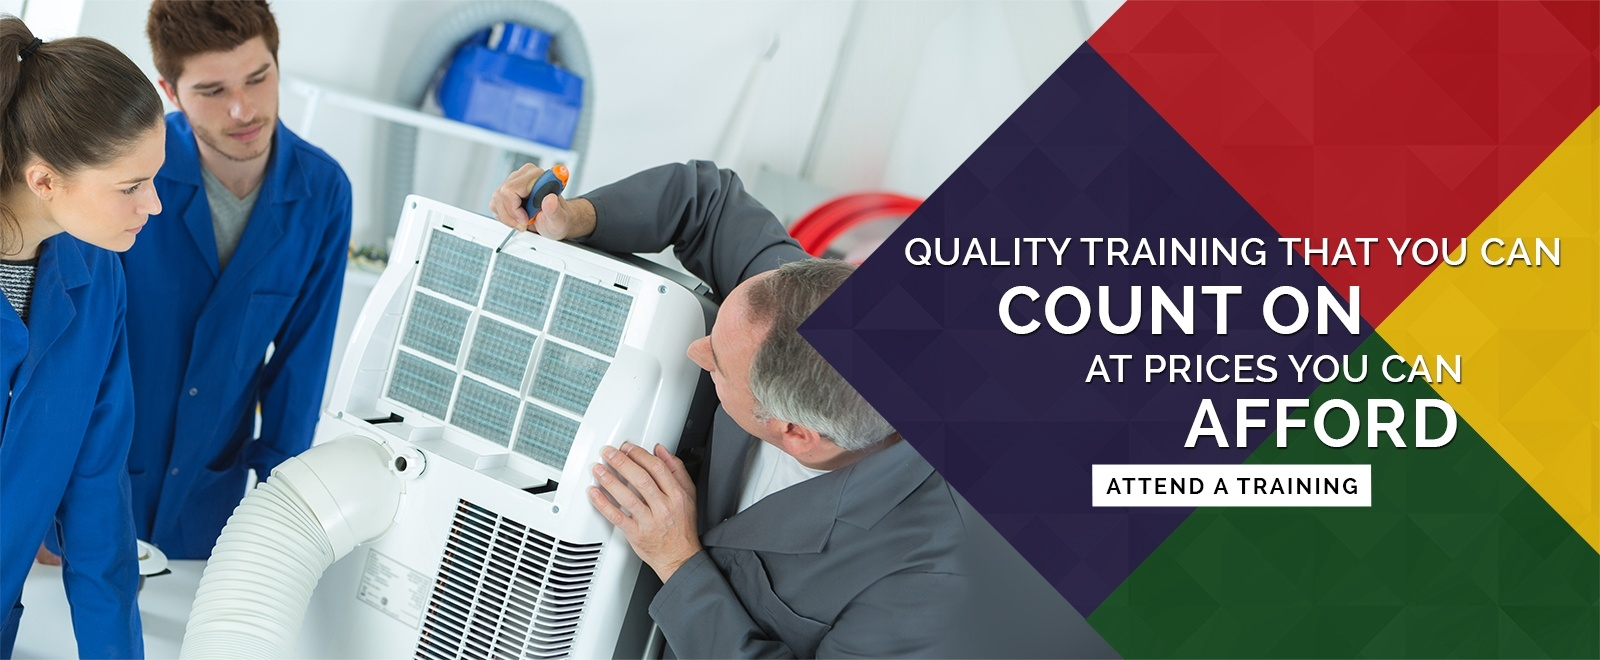 HVAC Continuing Education Courses Online